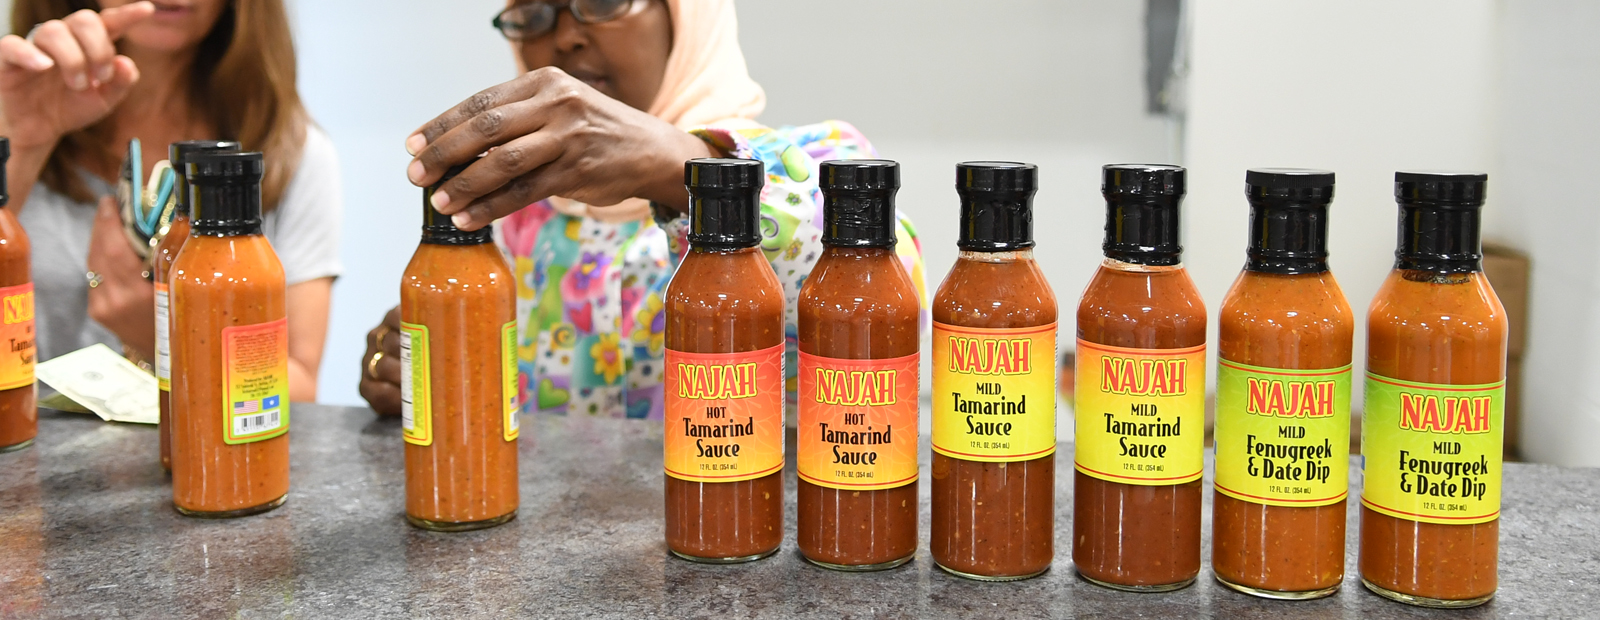 The Najah savory sauce line: owner Bisharo Ali shows product to a new customer  <span class='image-credits'>Nancy J. Parisi</span>